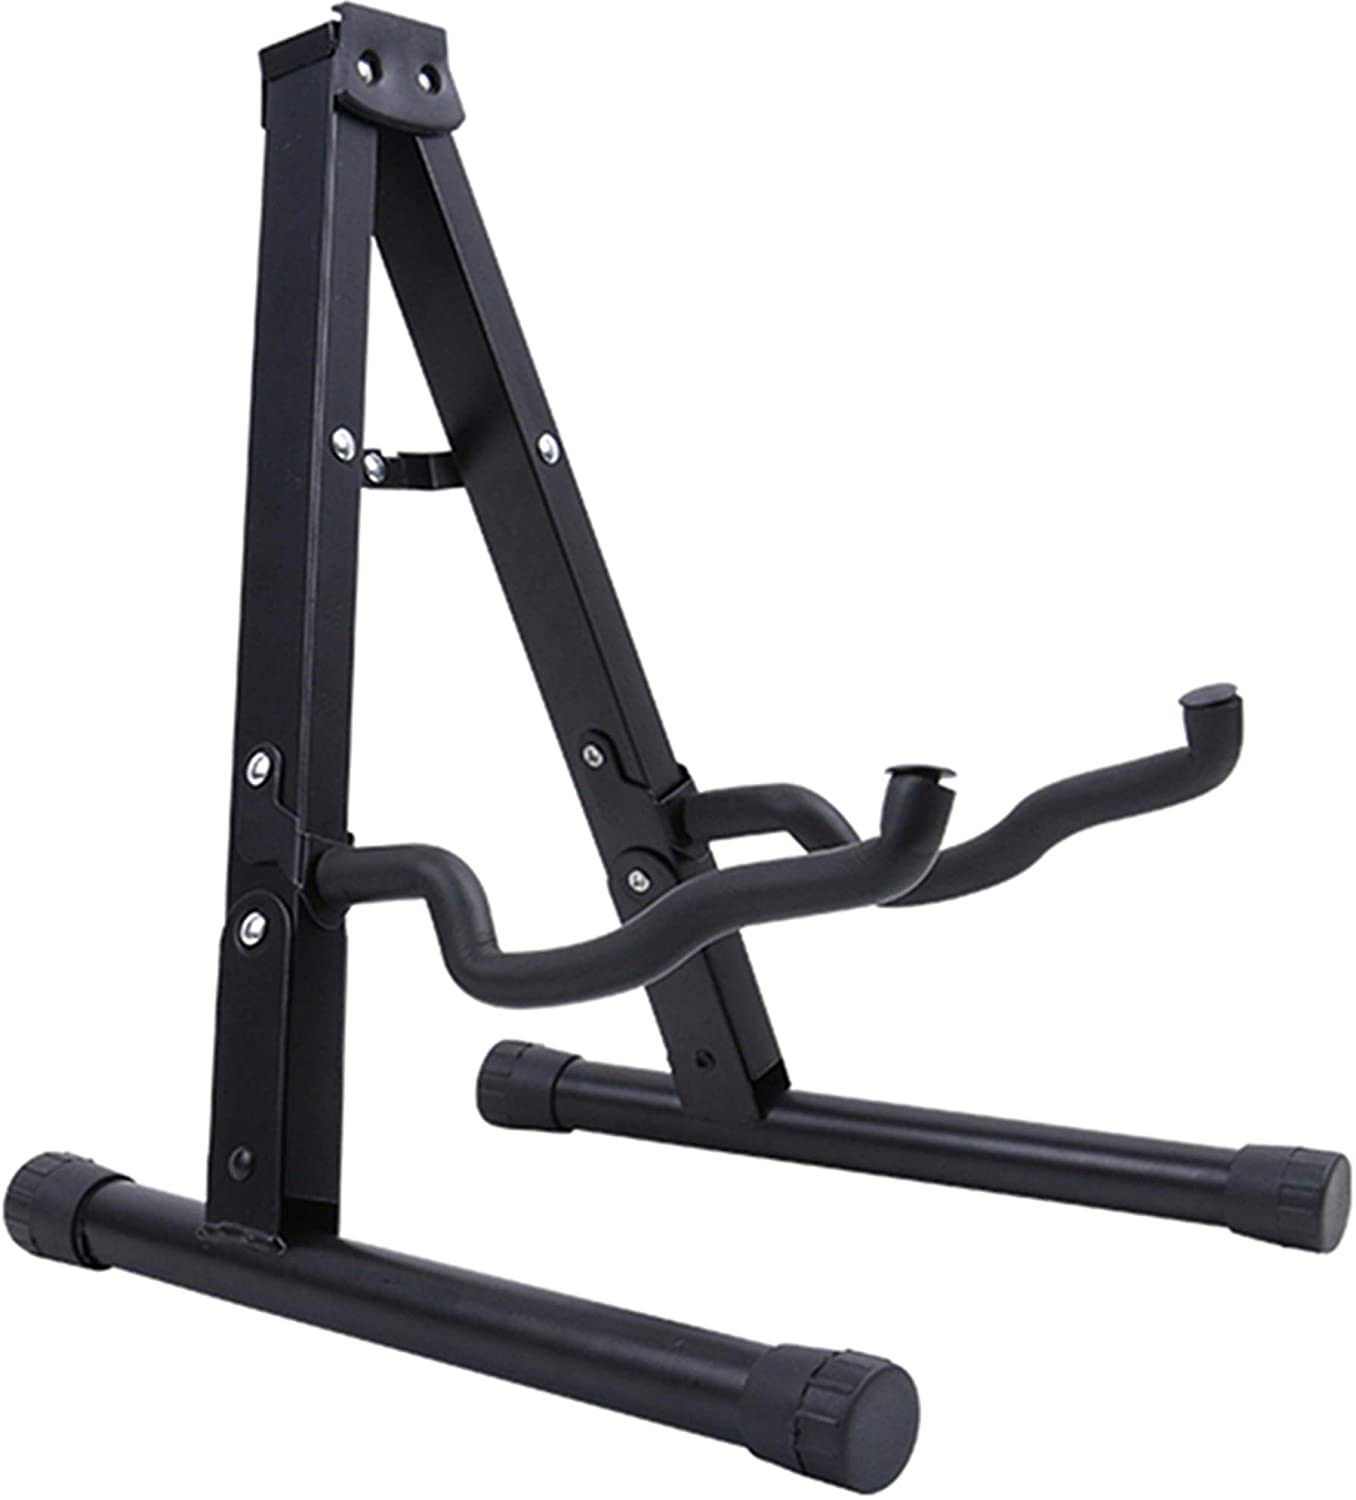 Guitar Stand Folding Universal A frame Stand Floor for All Guitars Acoustic Classic Electric Bass Travel Guitar Stand - Black